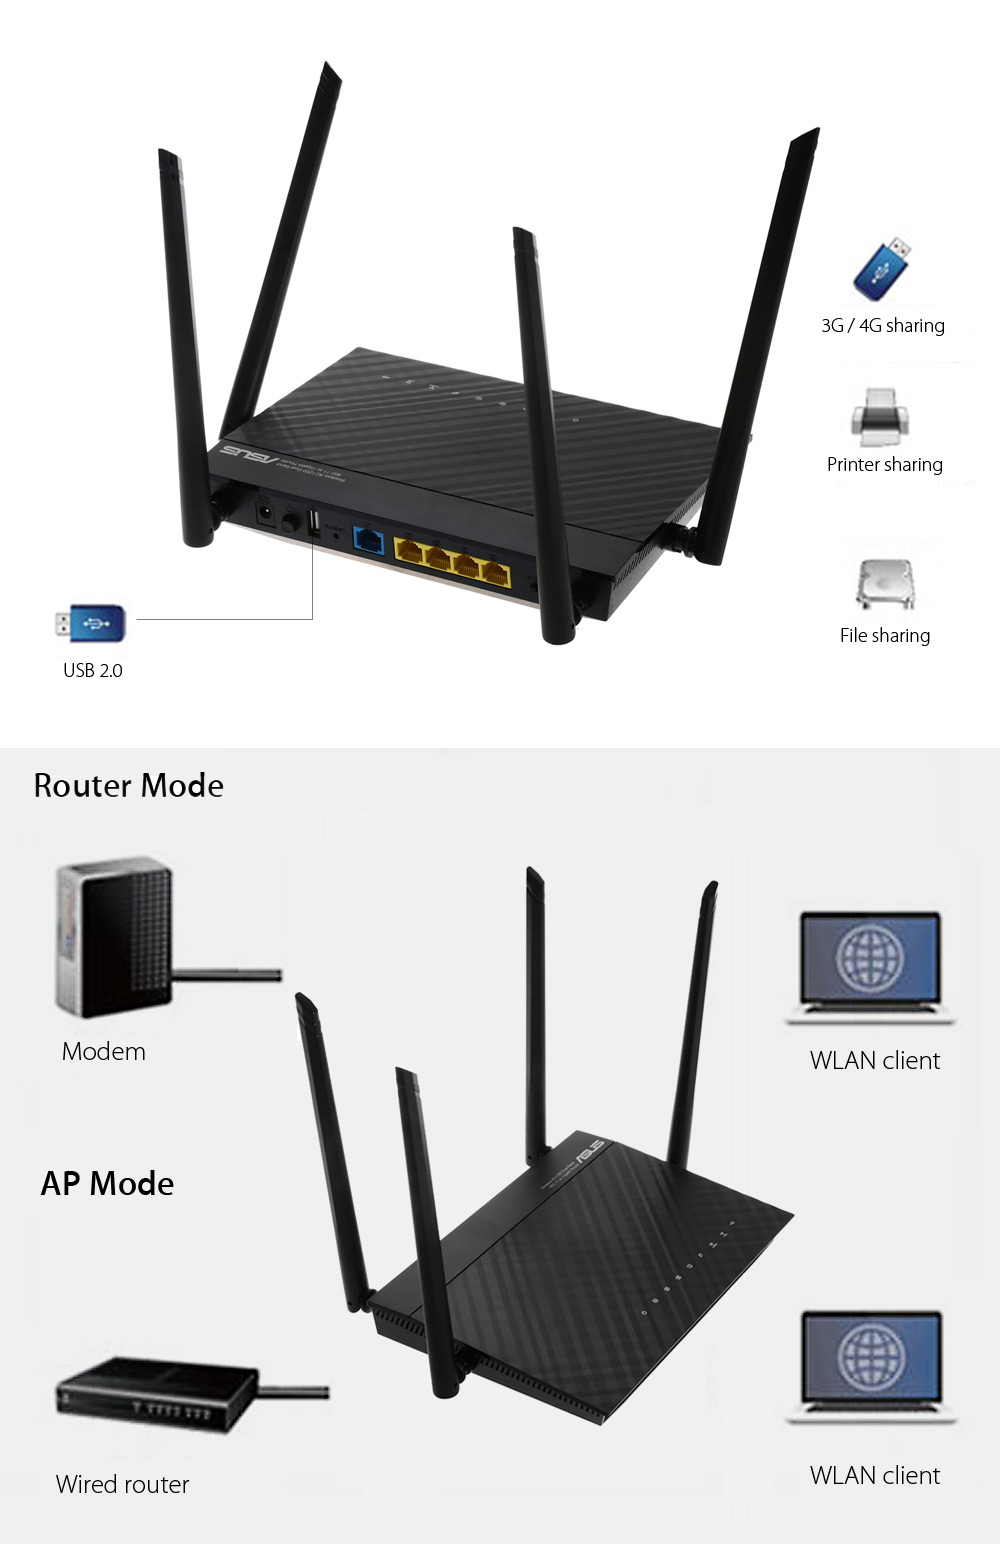 Original Asus Rt Ac1200gu 1200mbps Wireless Router 8223 Free Usb Cable Wiring Diagram Packing List 1 X Ethernet Power Adapter Chinese Manual